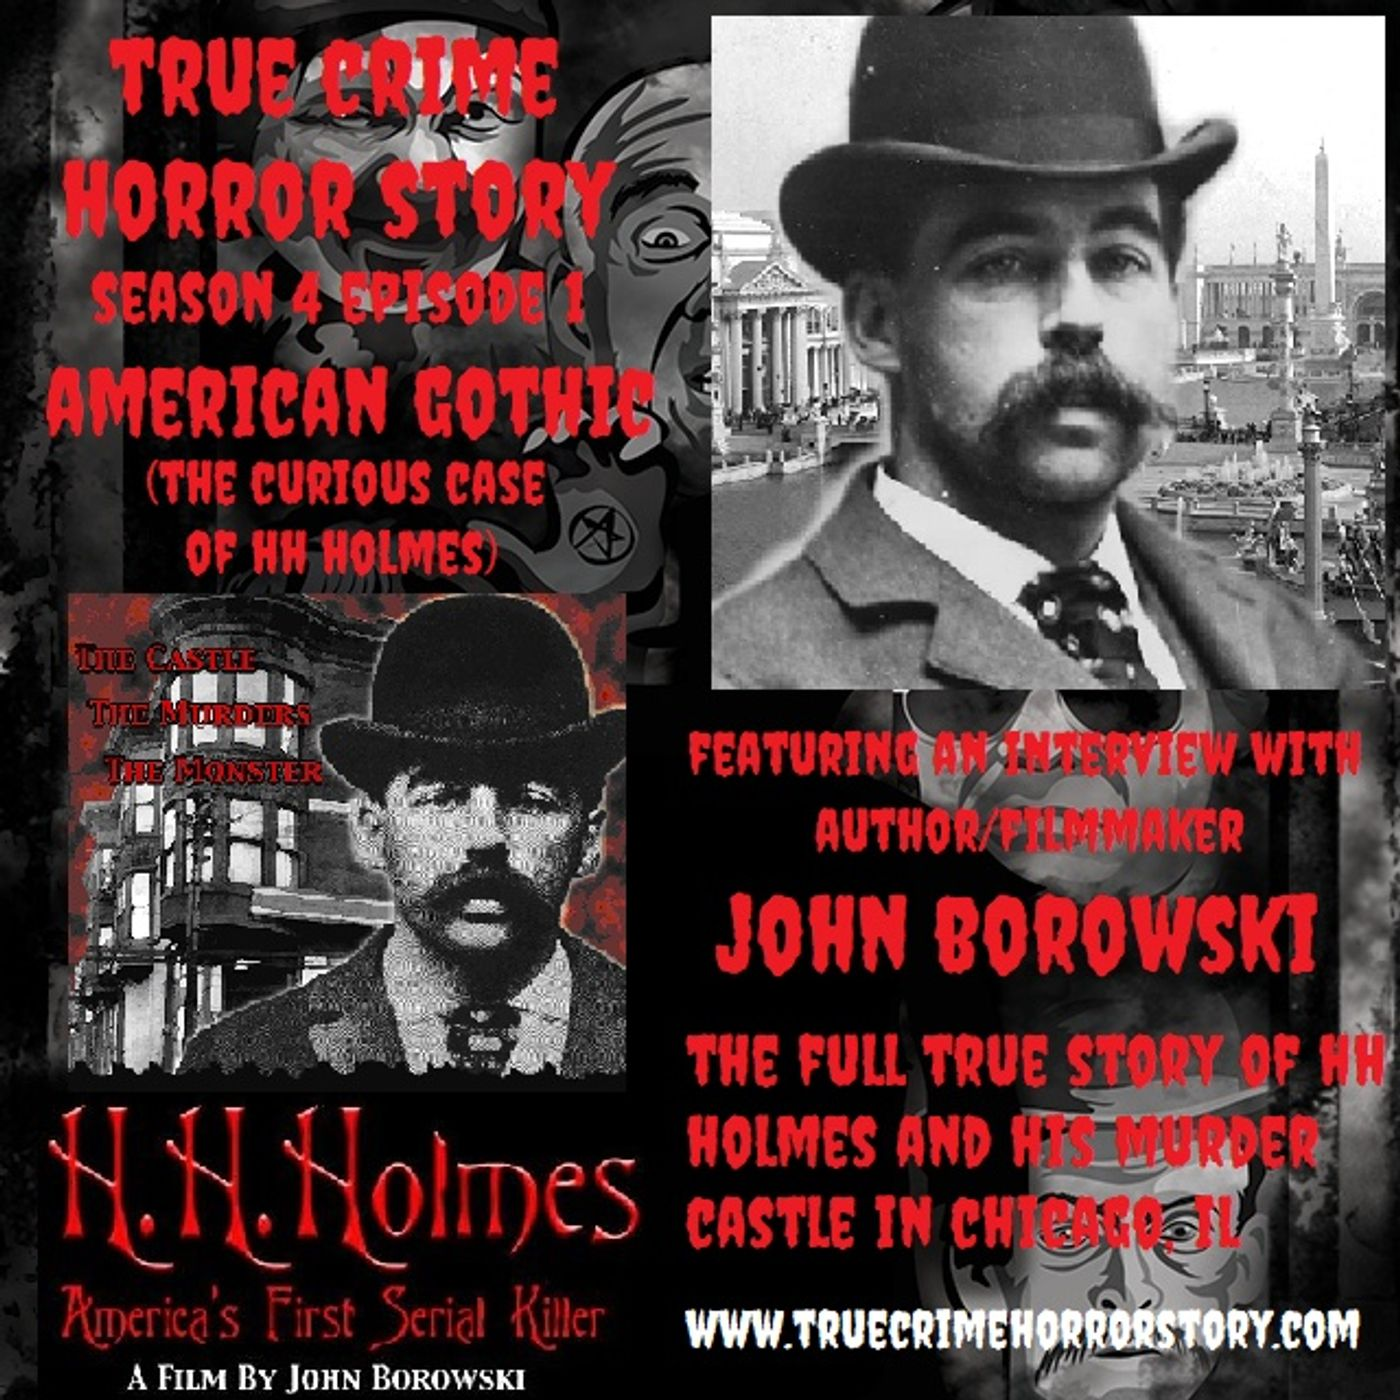 S4E1: American Gothic (The Curious Case of HH Holmes)